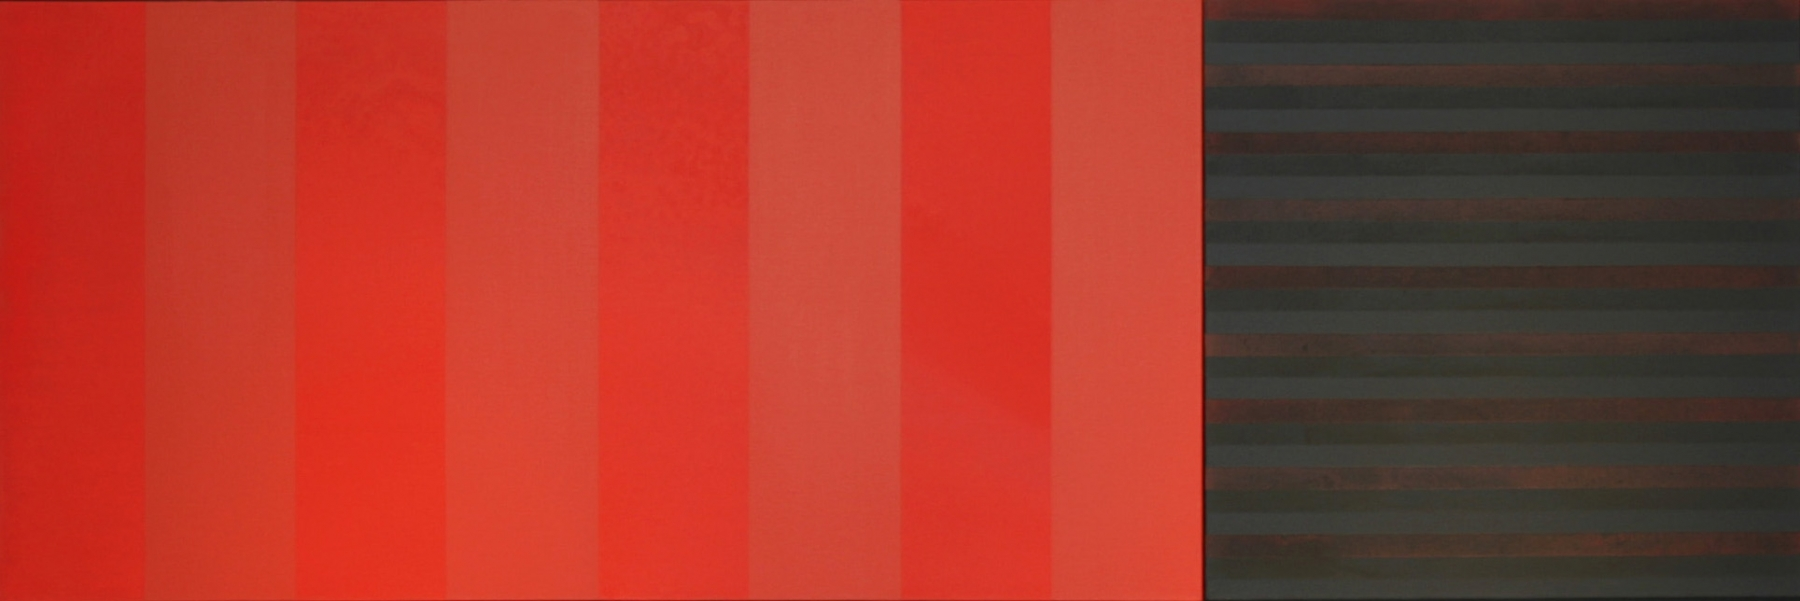 """RED BLACK  2006  Acrylic on canvas,  27 x 81""""  Private collection"""